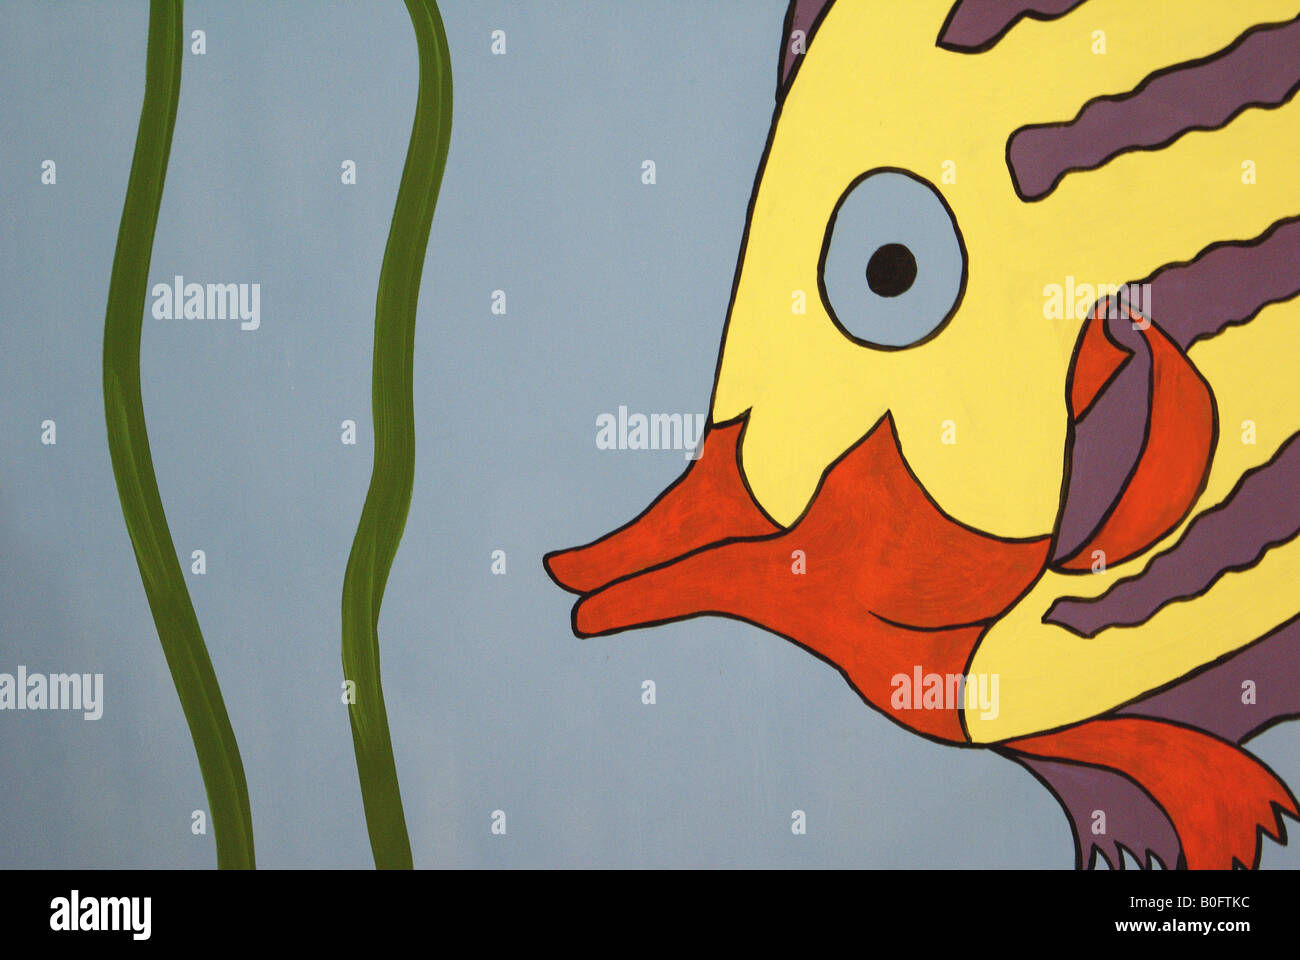 drawing of colorful clipart fish with orange lips Stock Photo ...